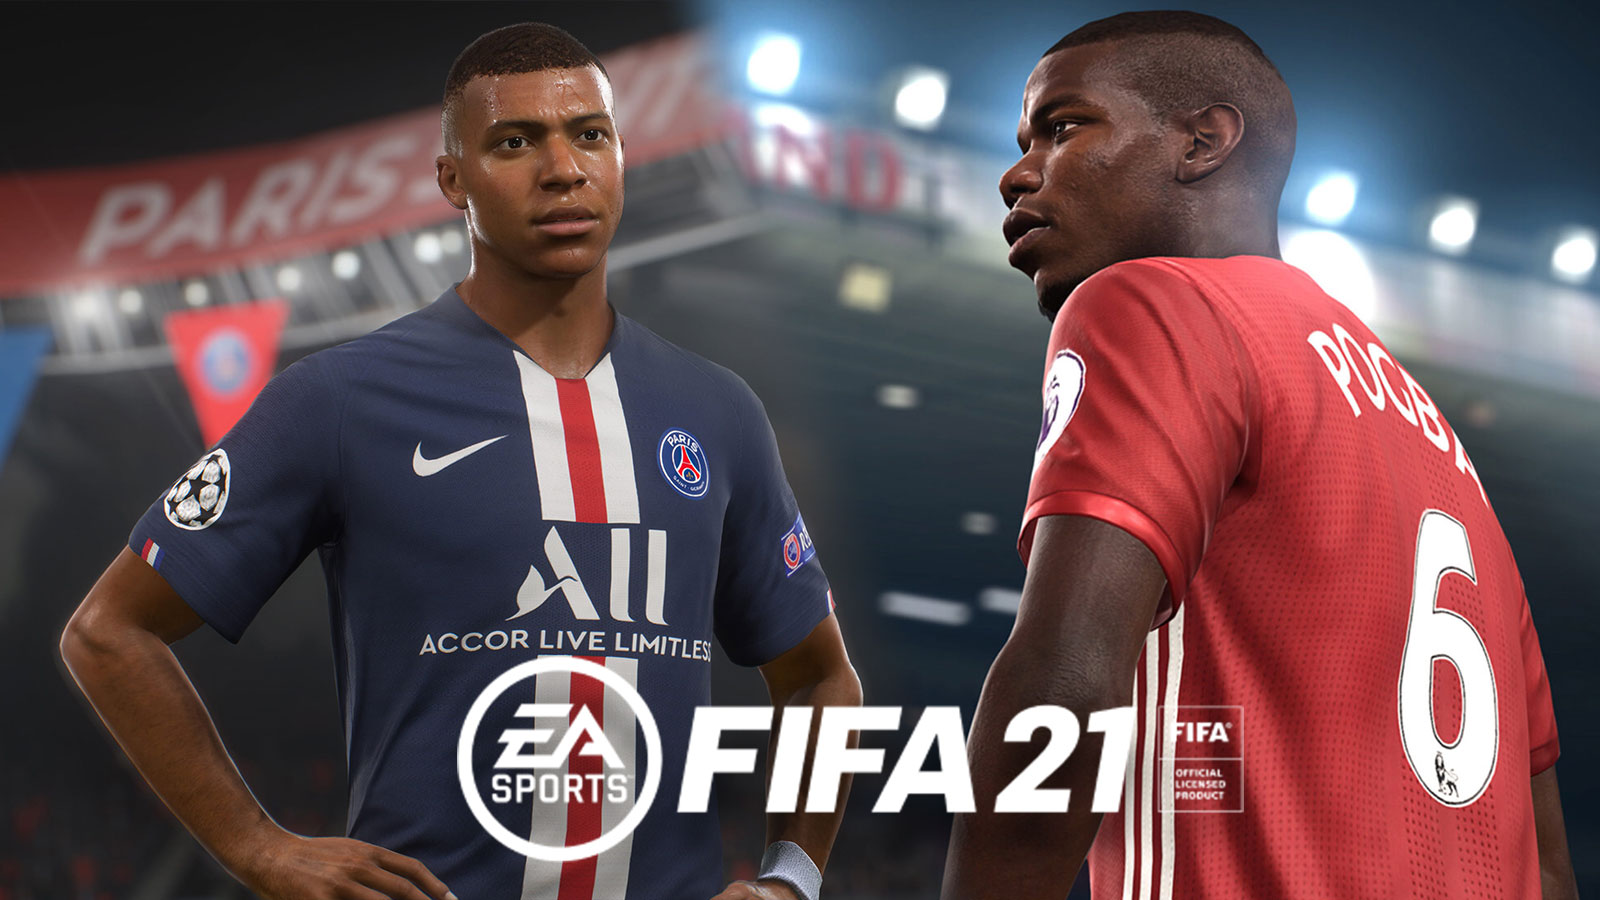 Mbappe Pogba FIFA 21 top Skill players